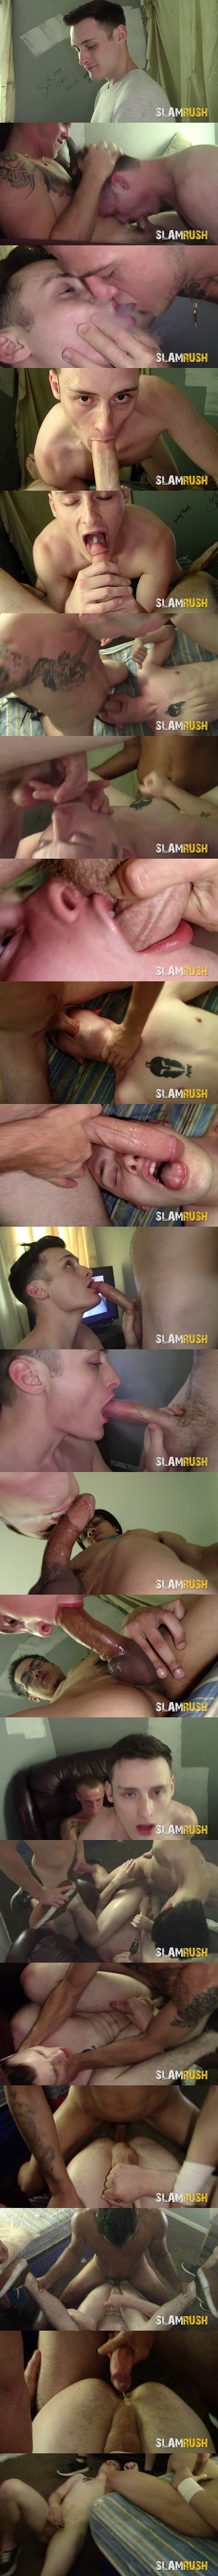 Slamrush - Tony Hawg, Tony Romero and an anonymous street fucker gangbang and bareback house bitch Josh Cannon before they dump loads in John's mouth and ass in Sloppy Slam 02